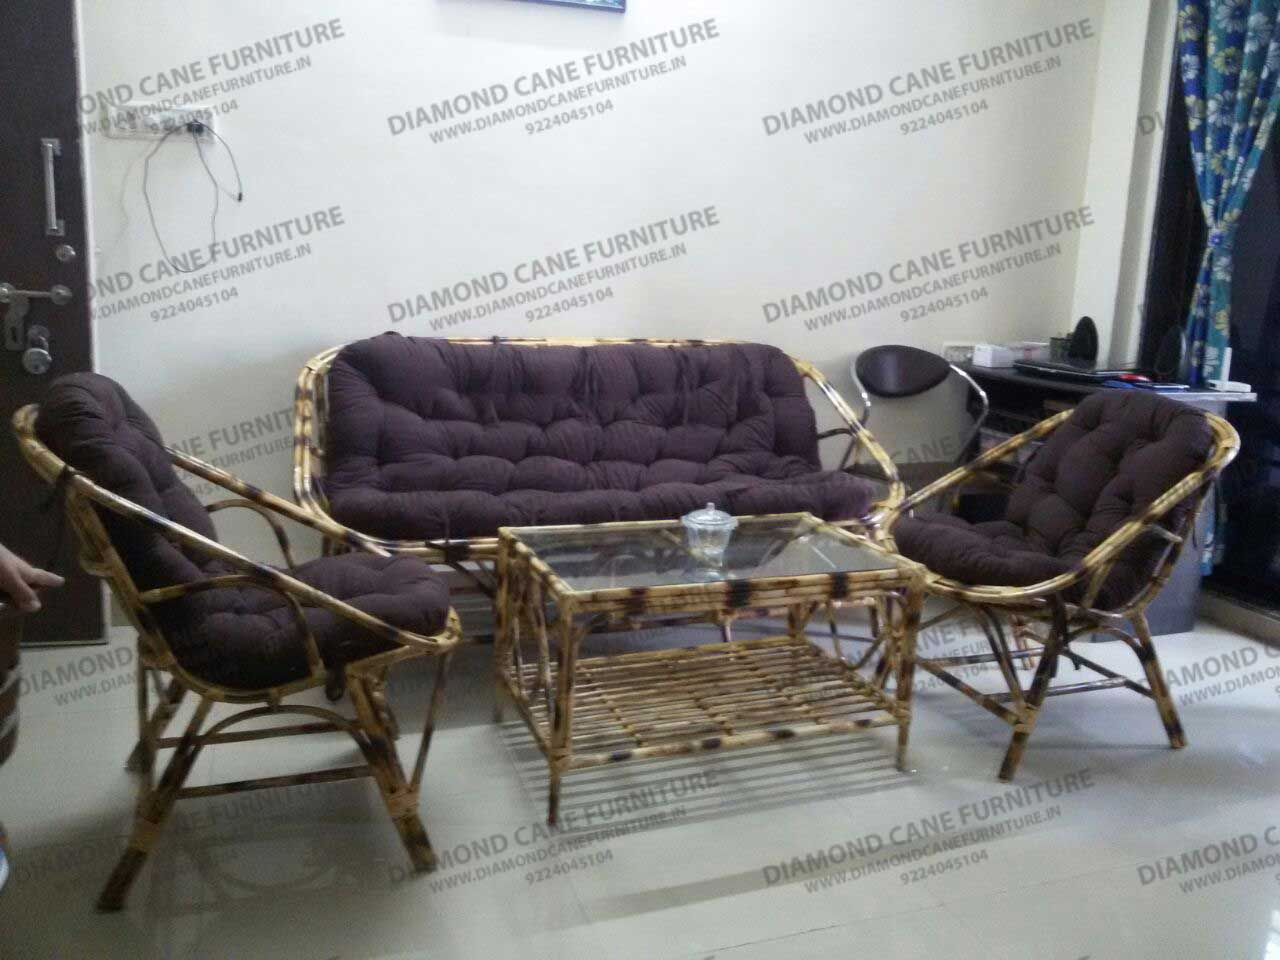 Sofa Set Furniture Diwan Aanda Cane Sofa And Table Set Diamond Cane Furniture